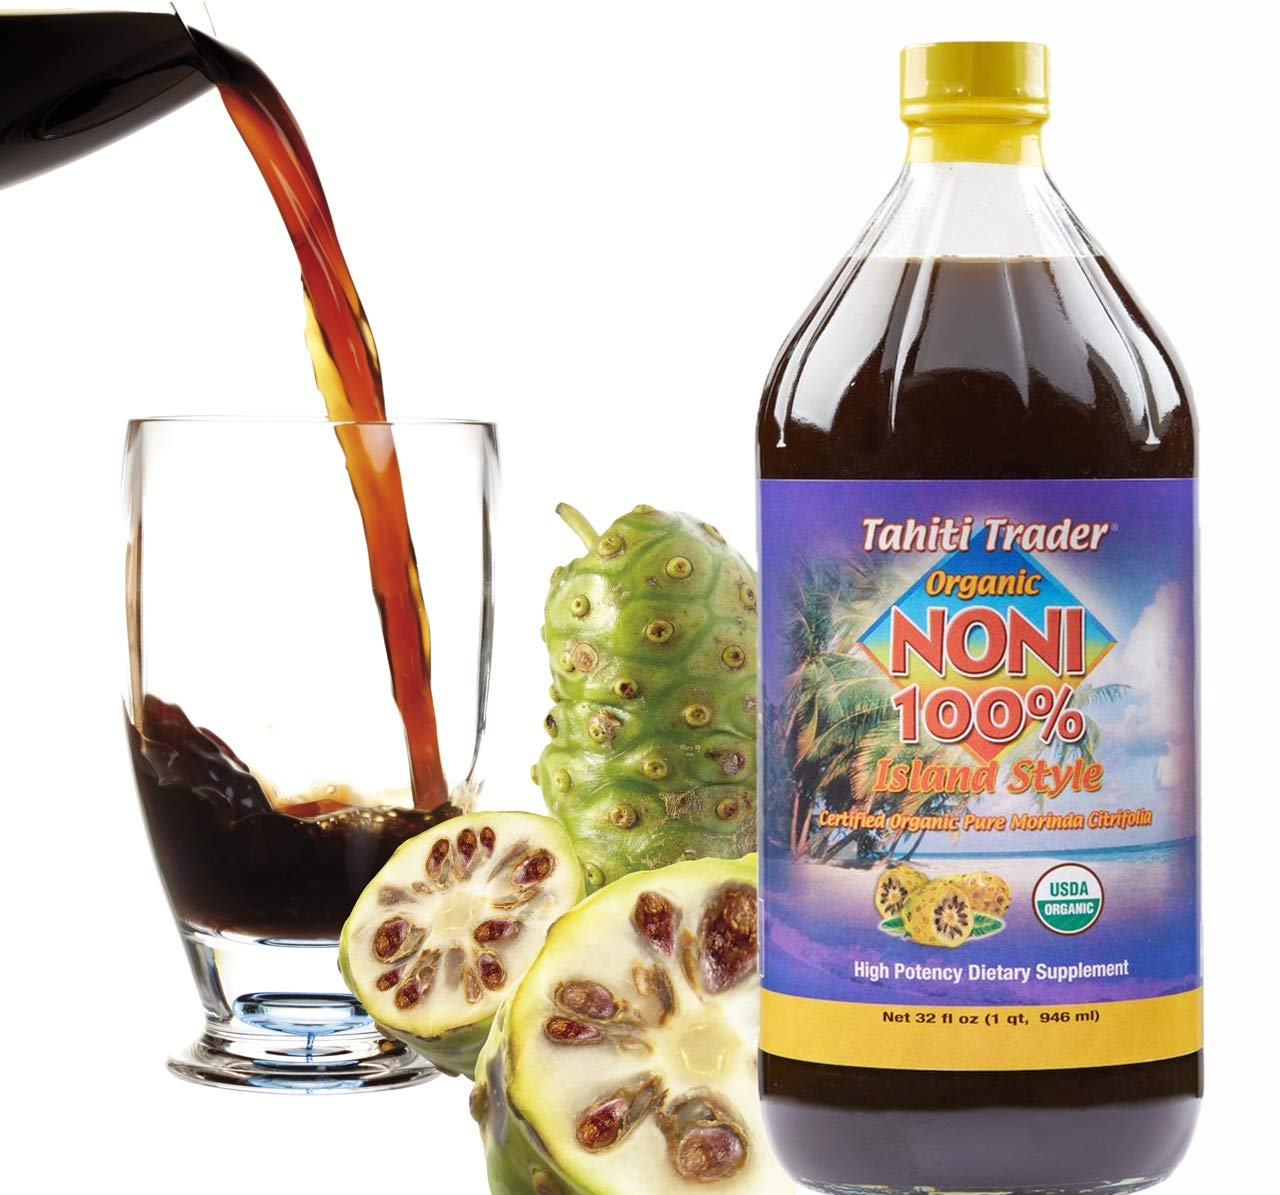 TAHITI TRADER Organic Noni 100 Island Style Juice 32oz – Noni Juice Organic Pure – Organic Noni Juice Tahiti – Juice Noni Tahiti Juice – High Potency 100 Pure Noni Juice – Single Pack